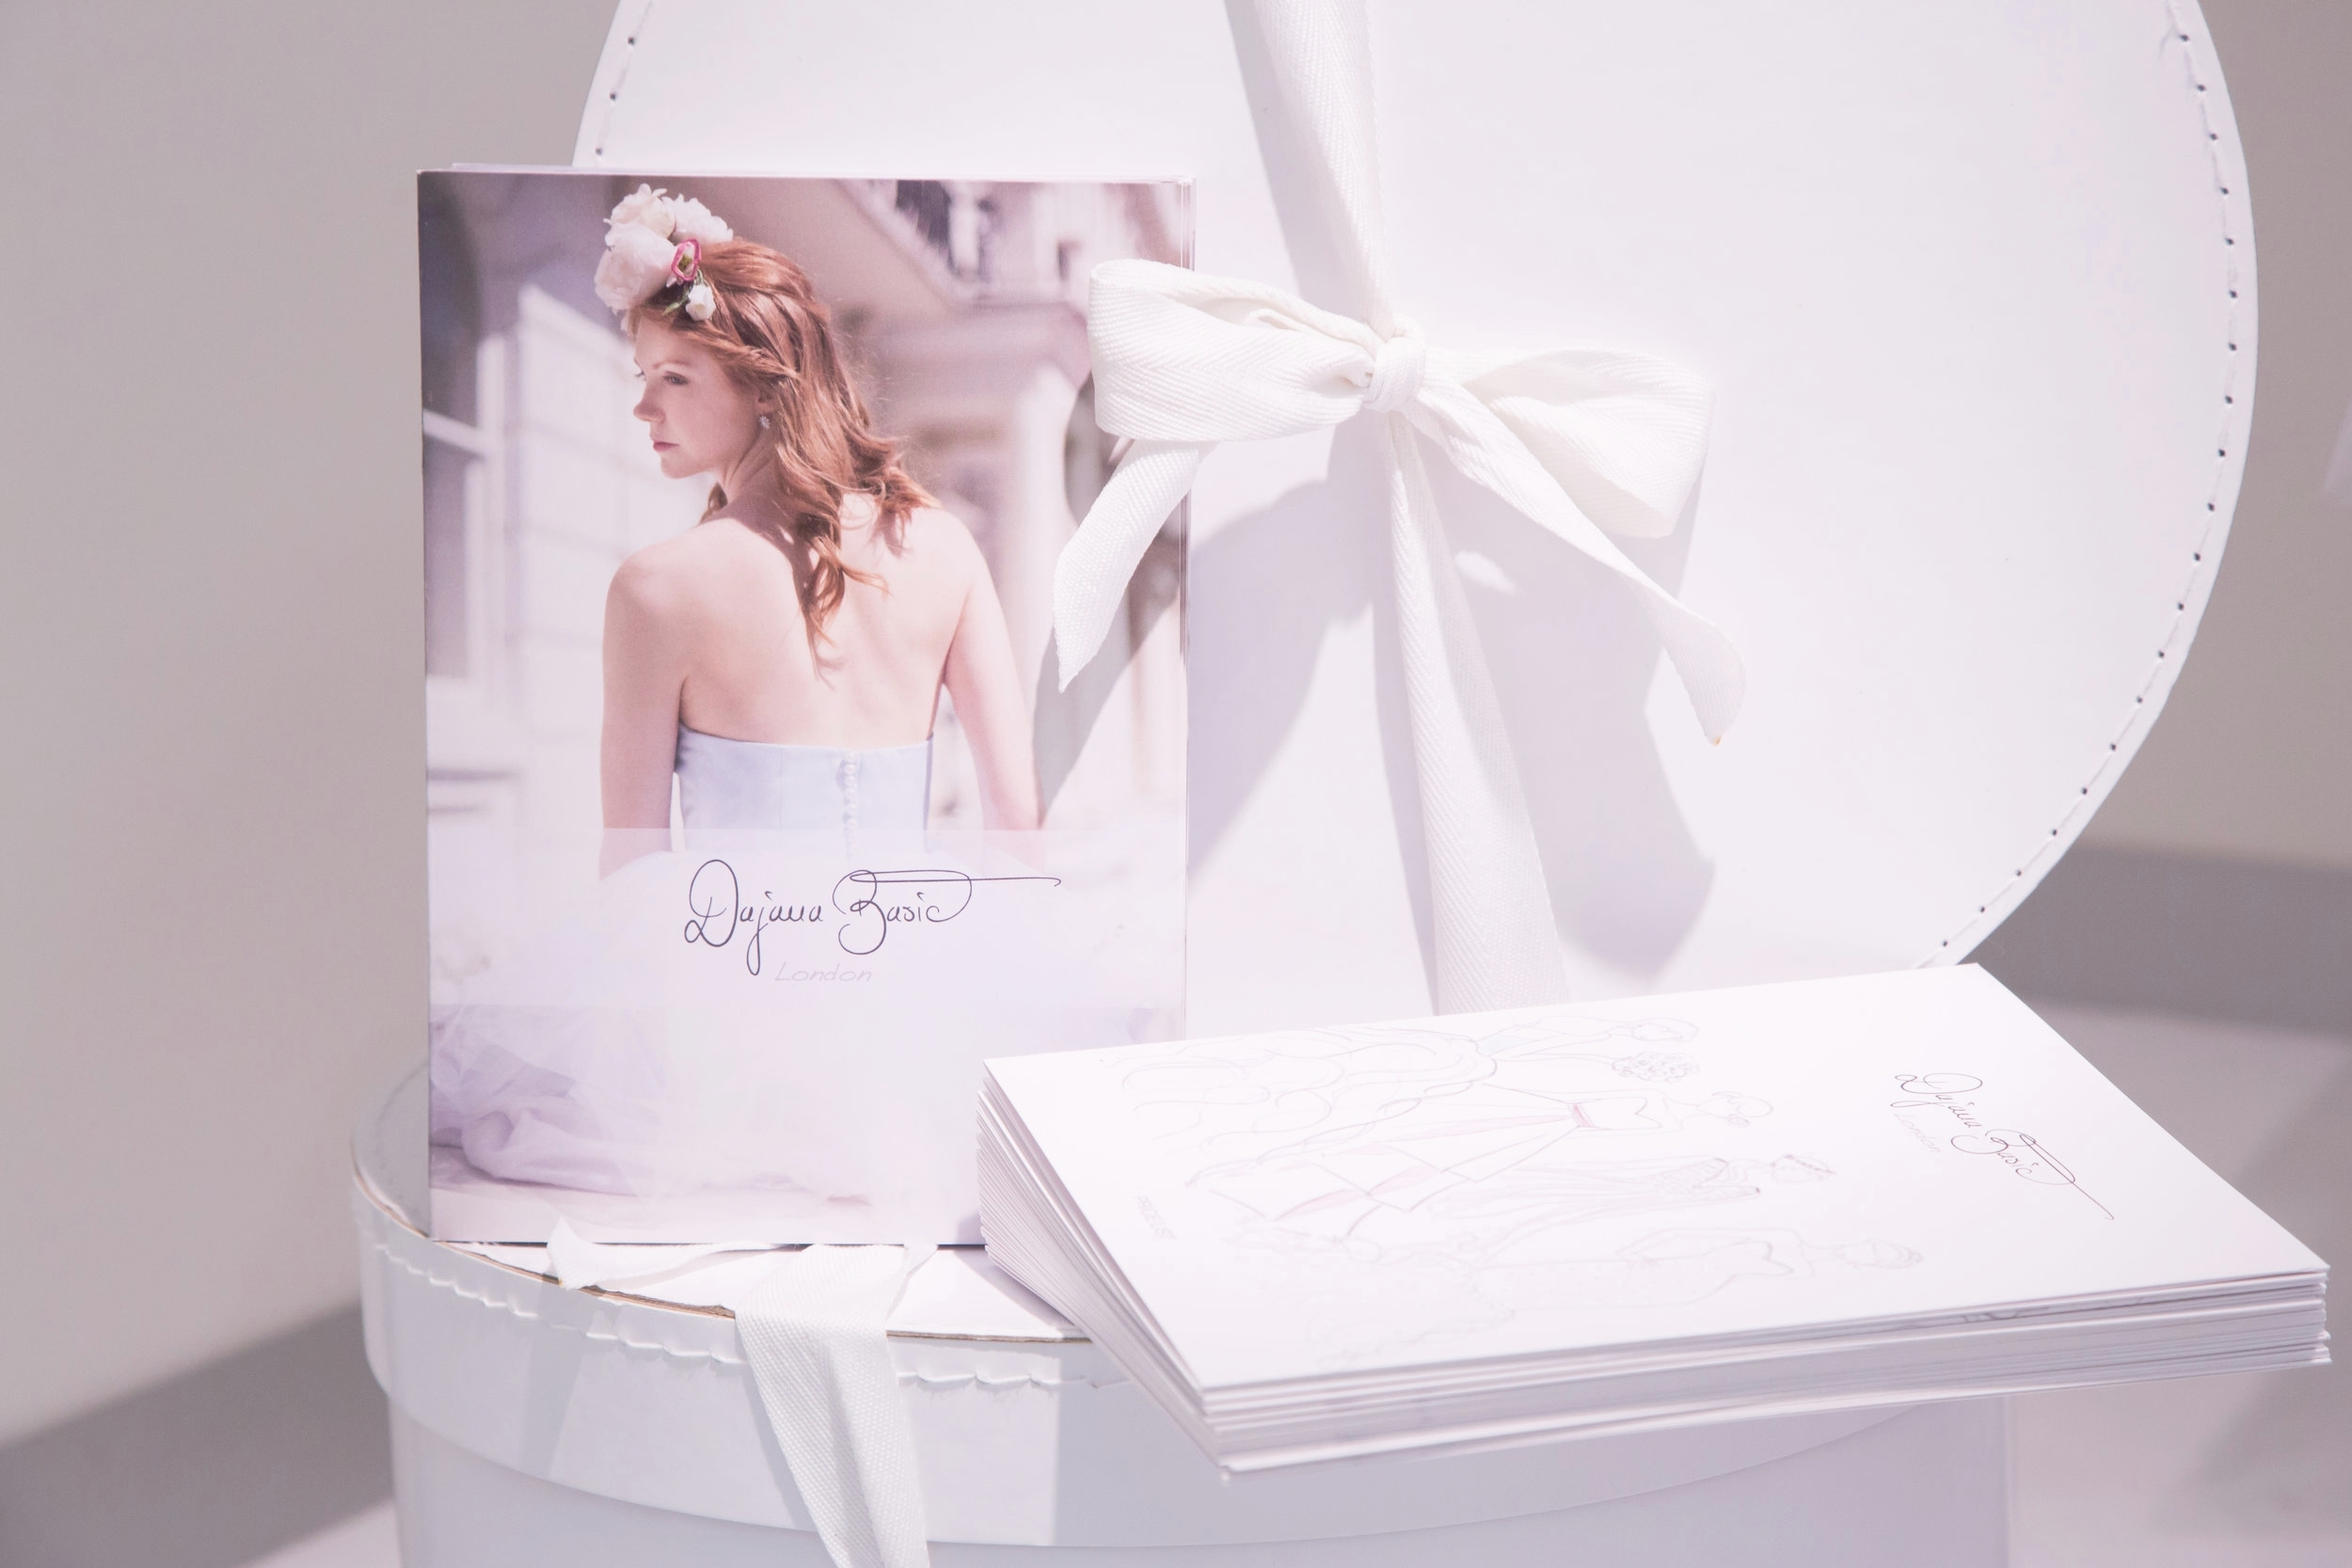 Delivery - Each gown is delivered in luxurious Dajana Basic London dress bags and packaging, including a bespoke certificate and handwritten card by Dajana.